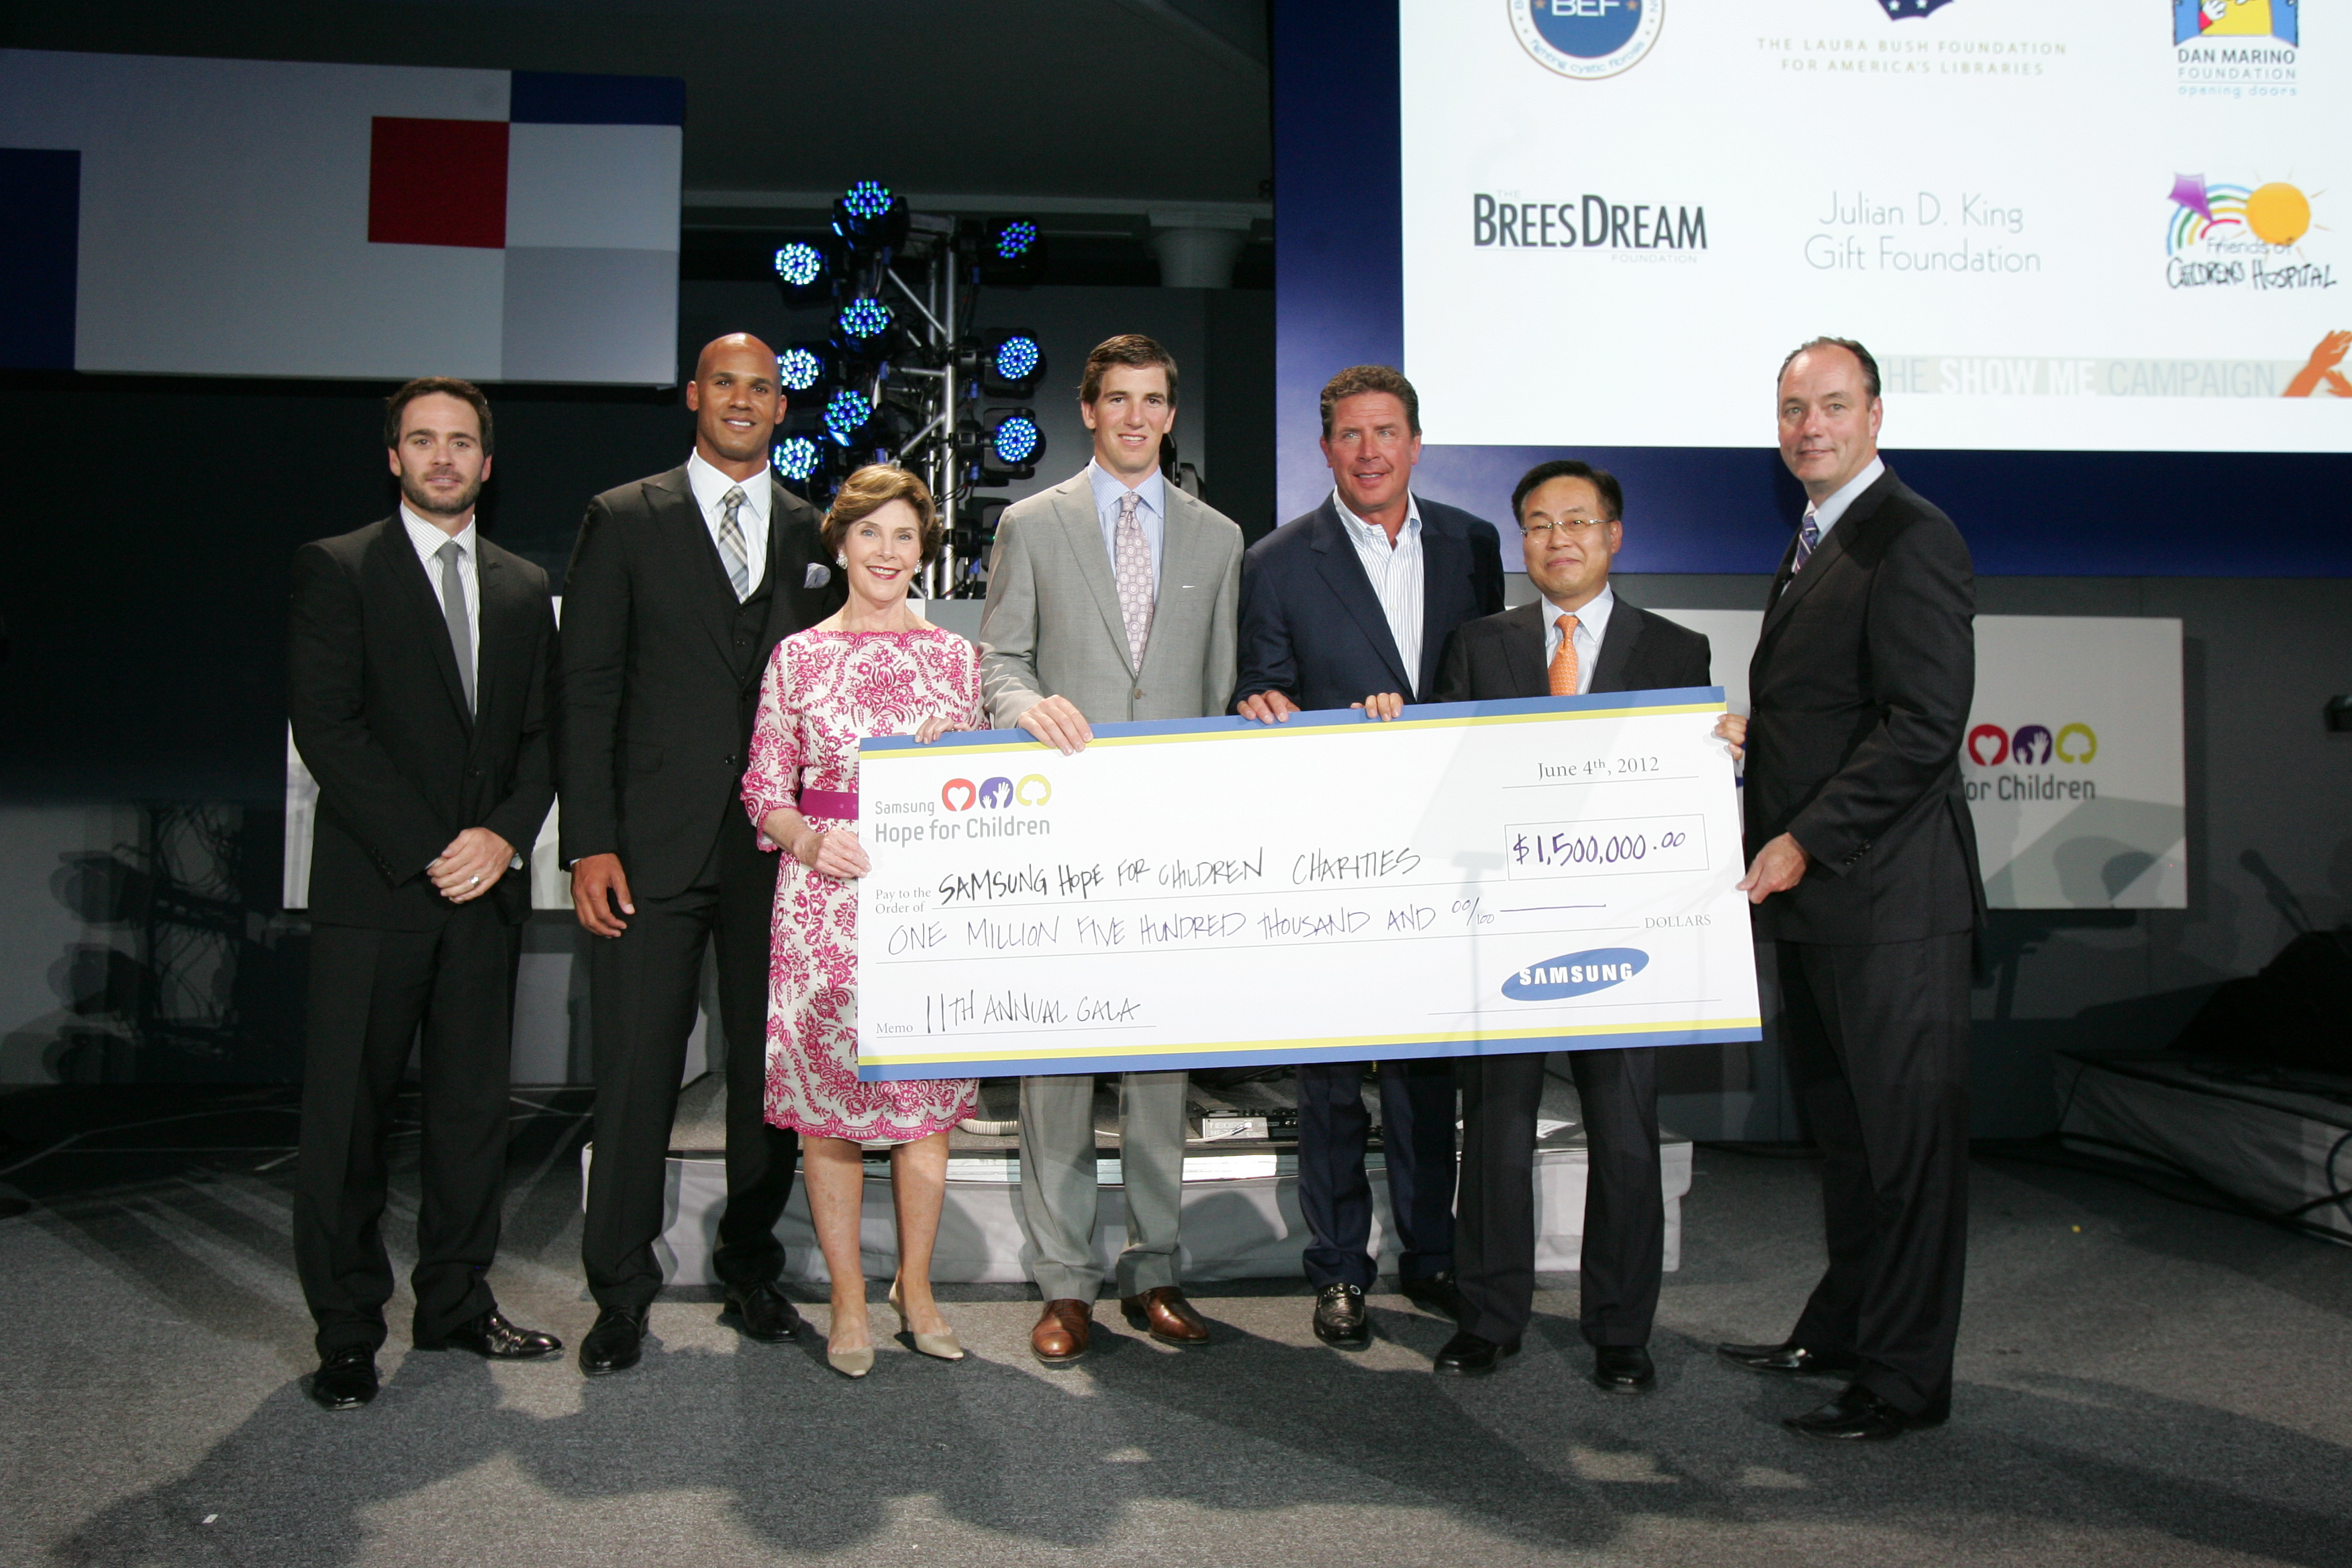 Jimmie and fellow honorees at the 2012 Samsung Hope for Children Gala in New York City.  Pictured left to right are Jimmie, Jason Taylor, Laura Bush, Eli Manning, Dan Marino, Samsung President and CEO YK Kim, Samsung Electronics America's President of Consumer Business Division Tim Baxter (NYC, 2012)